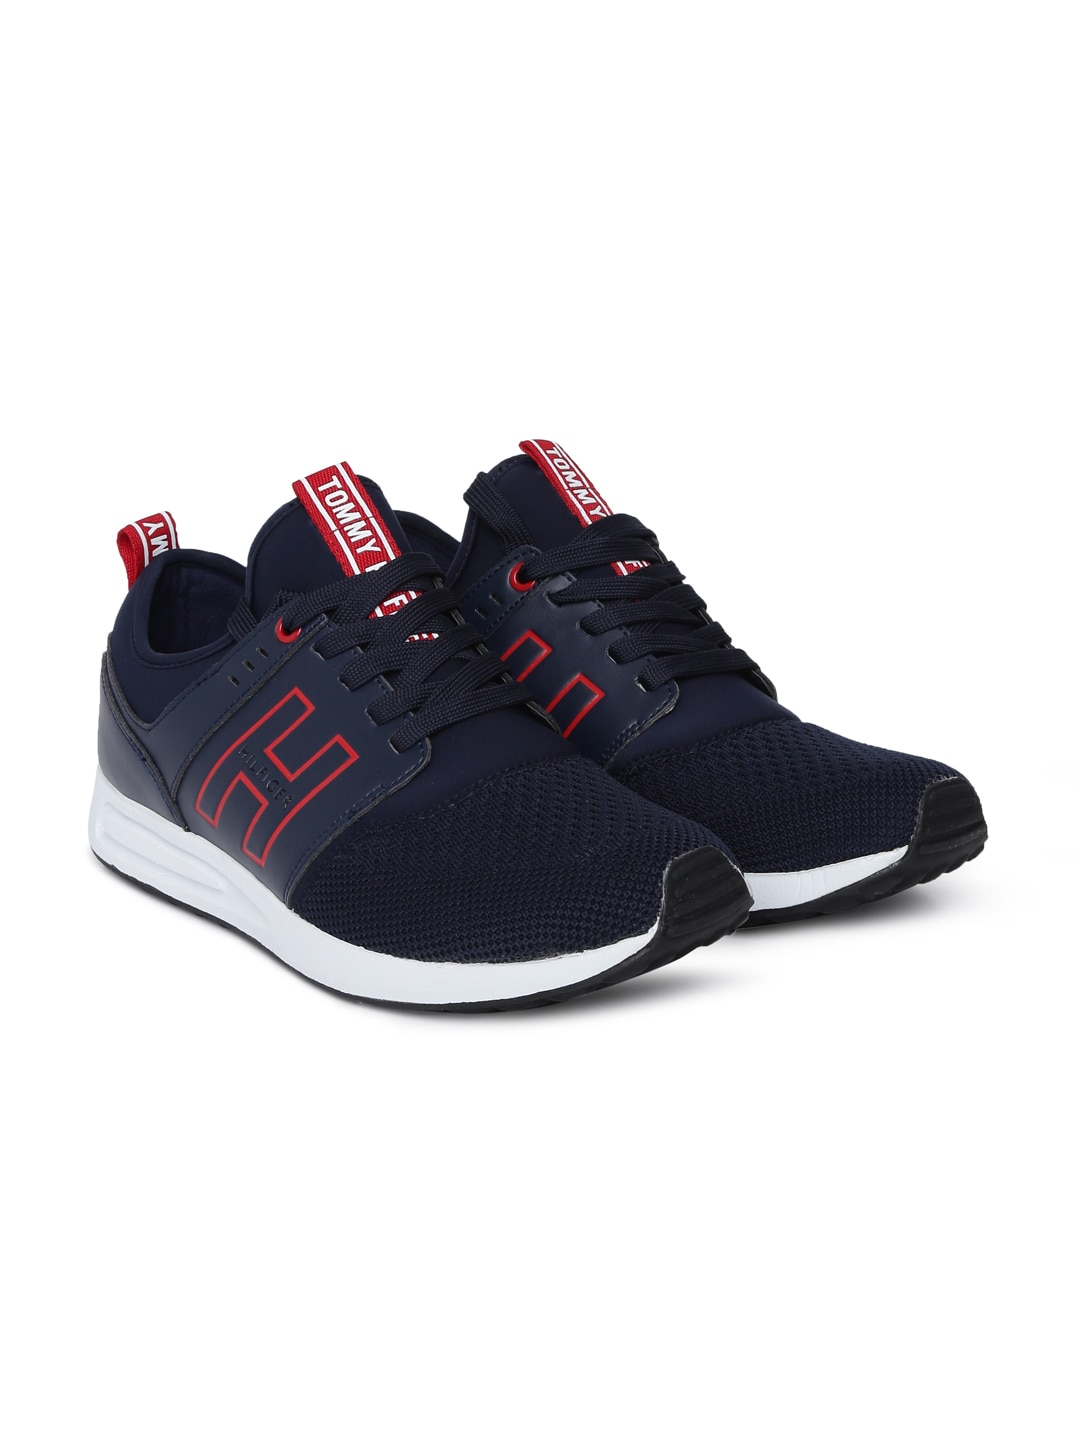 faa8a28e8153 Men Tommy Hilfiger Shoes - Buy Men Tommy Hilfiger Shoes Online in India